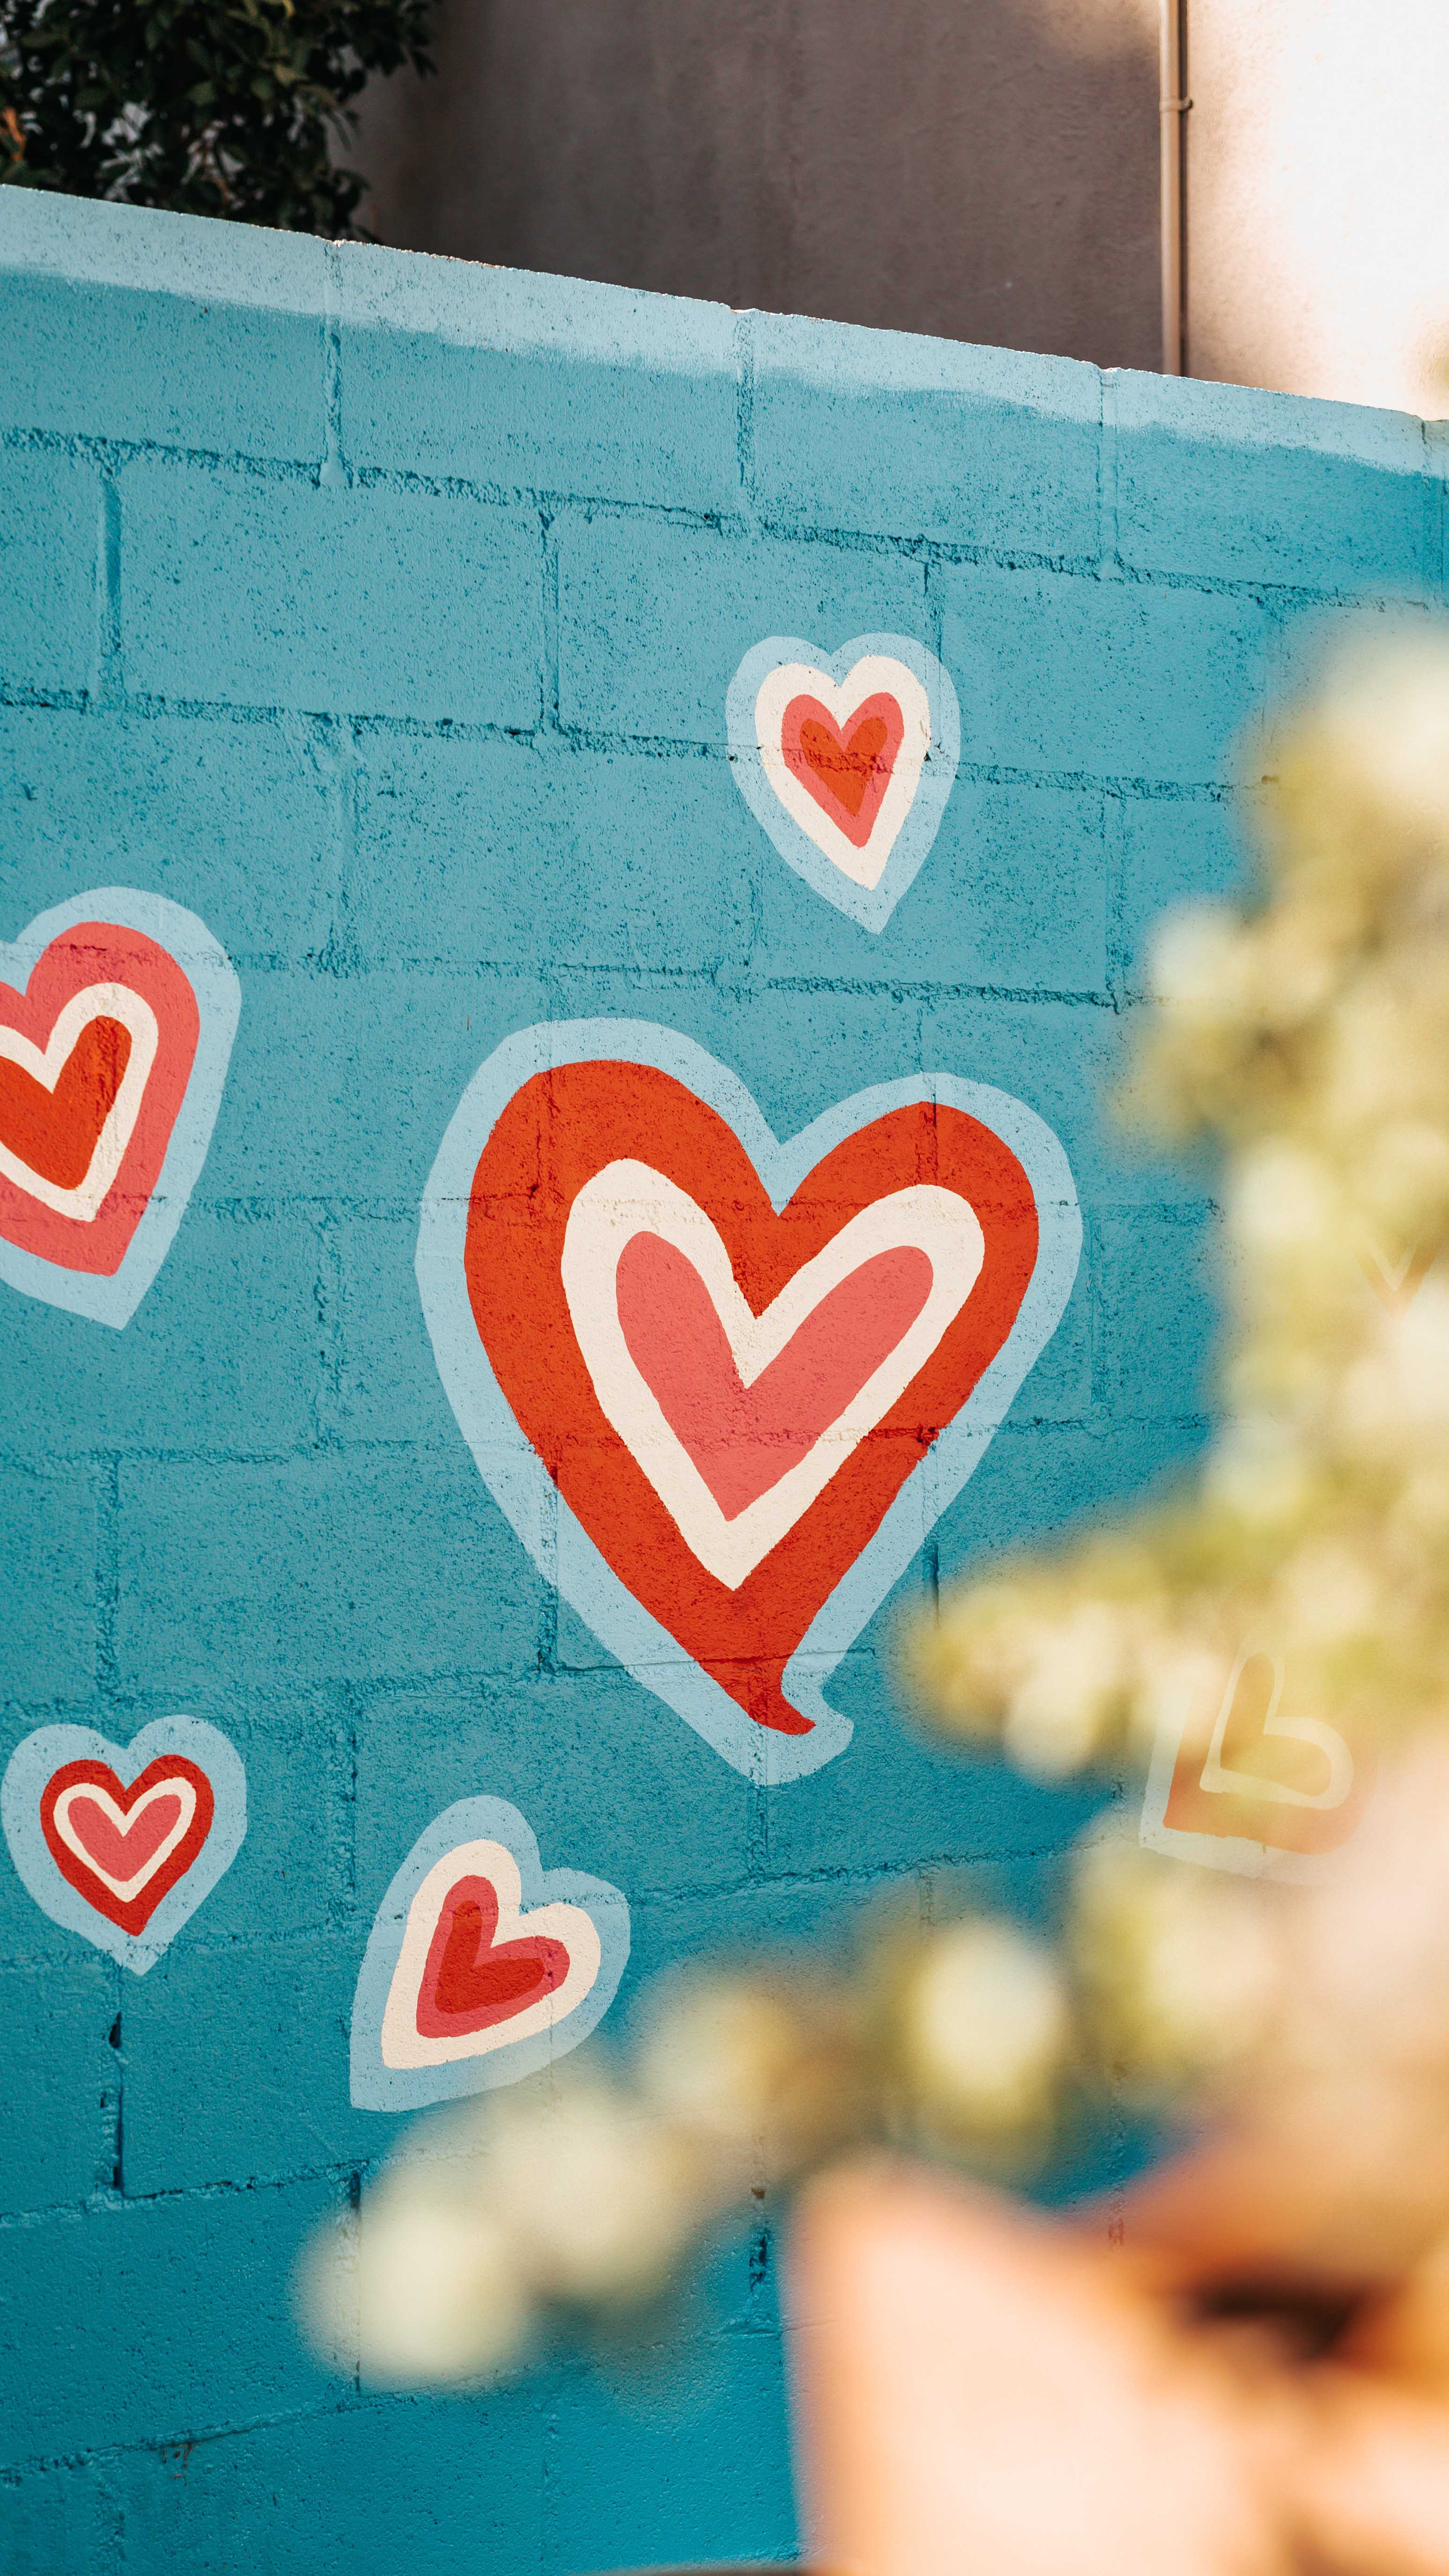 hd love backgrounds 10